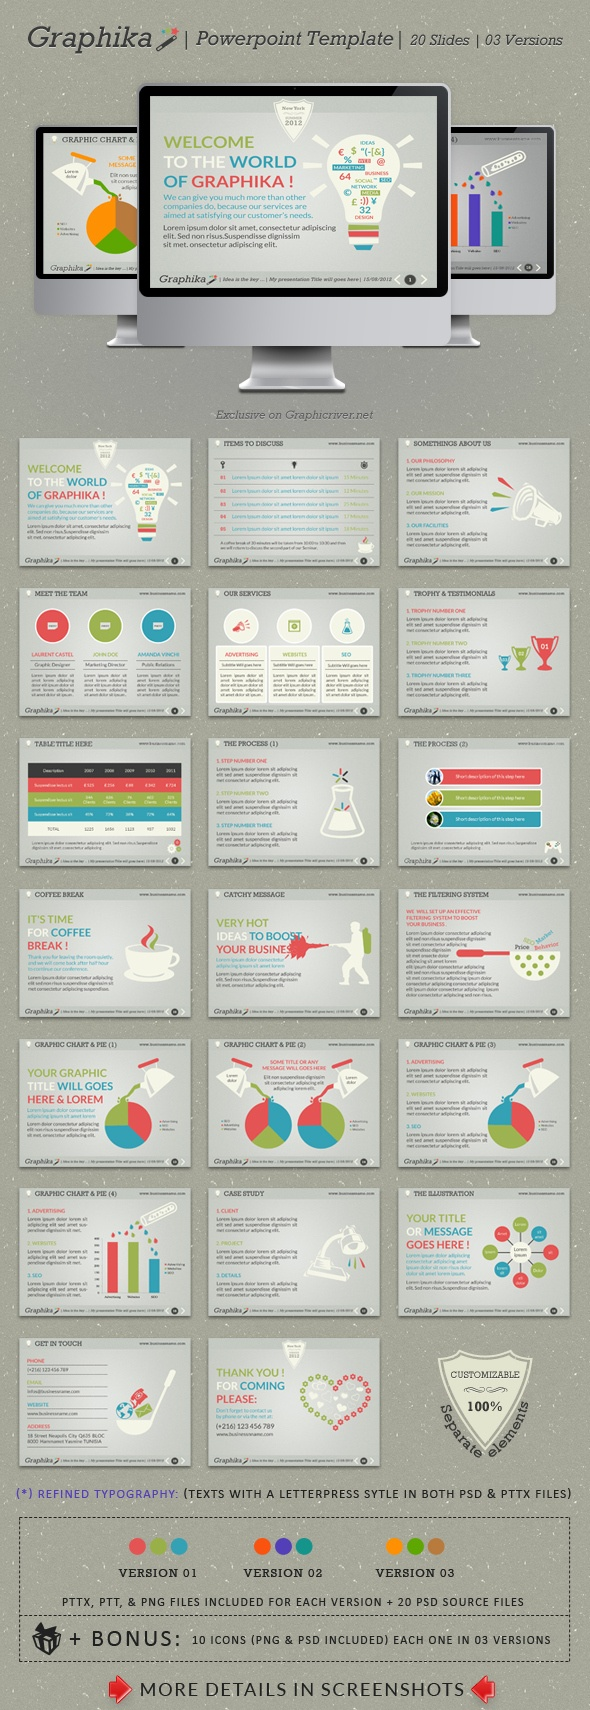 115 best powerpoint images on Pinterest | Creative powerpoint, Free ...